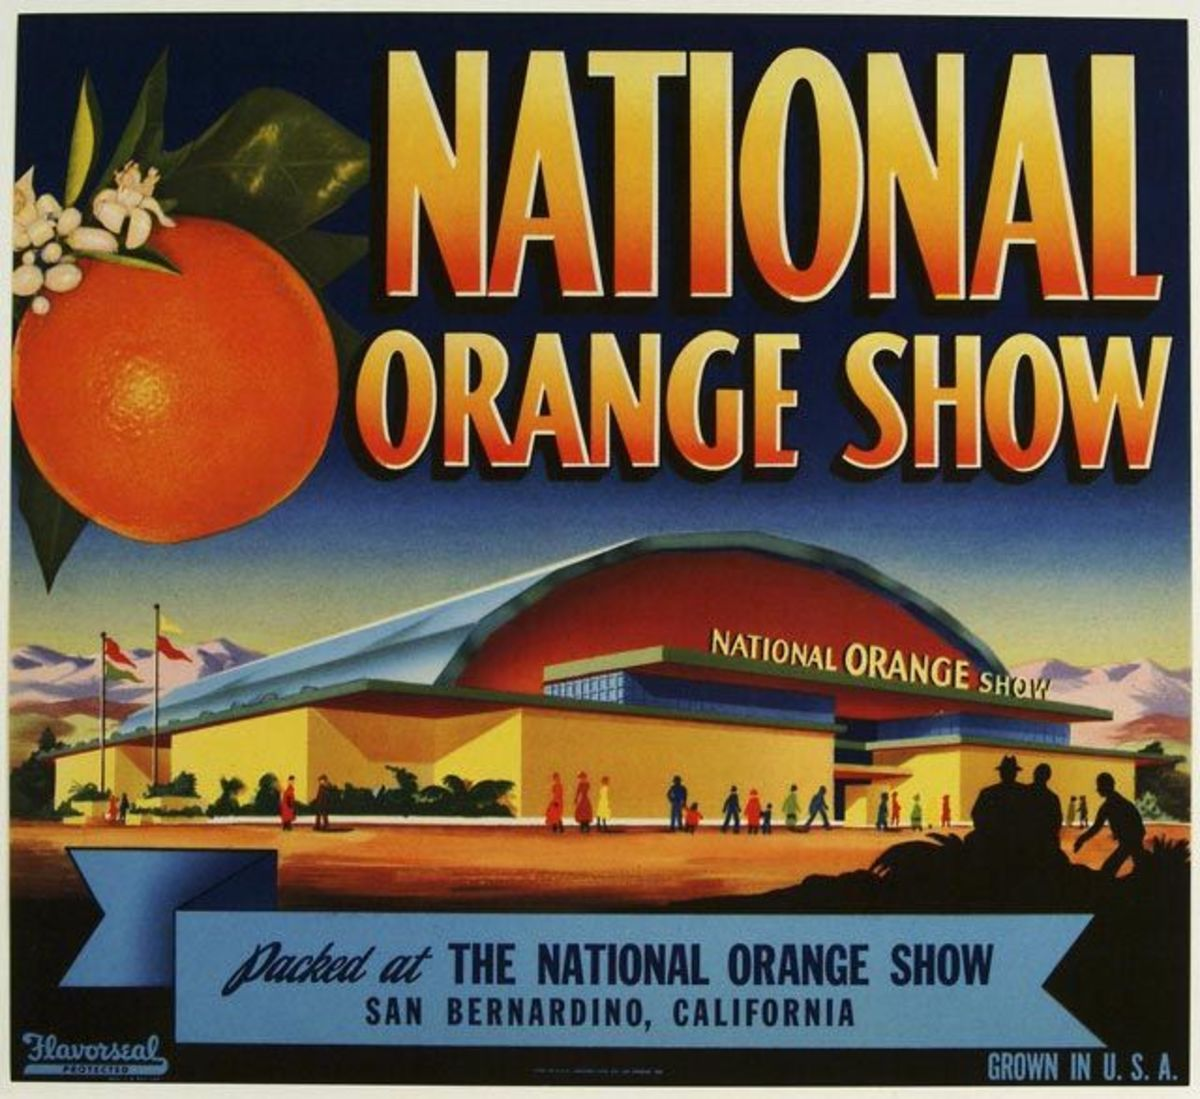 If you love oranges, and who doesn't, this is a must attend event!